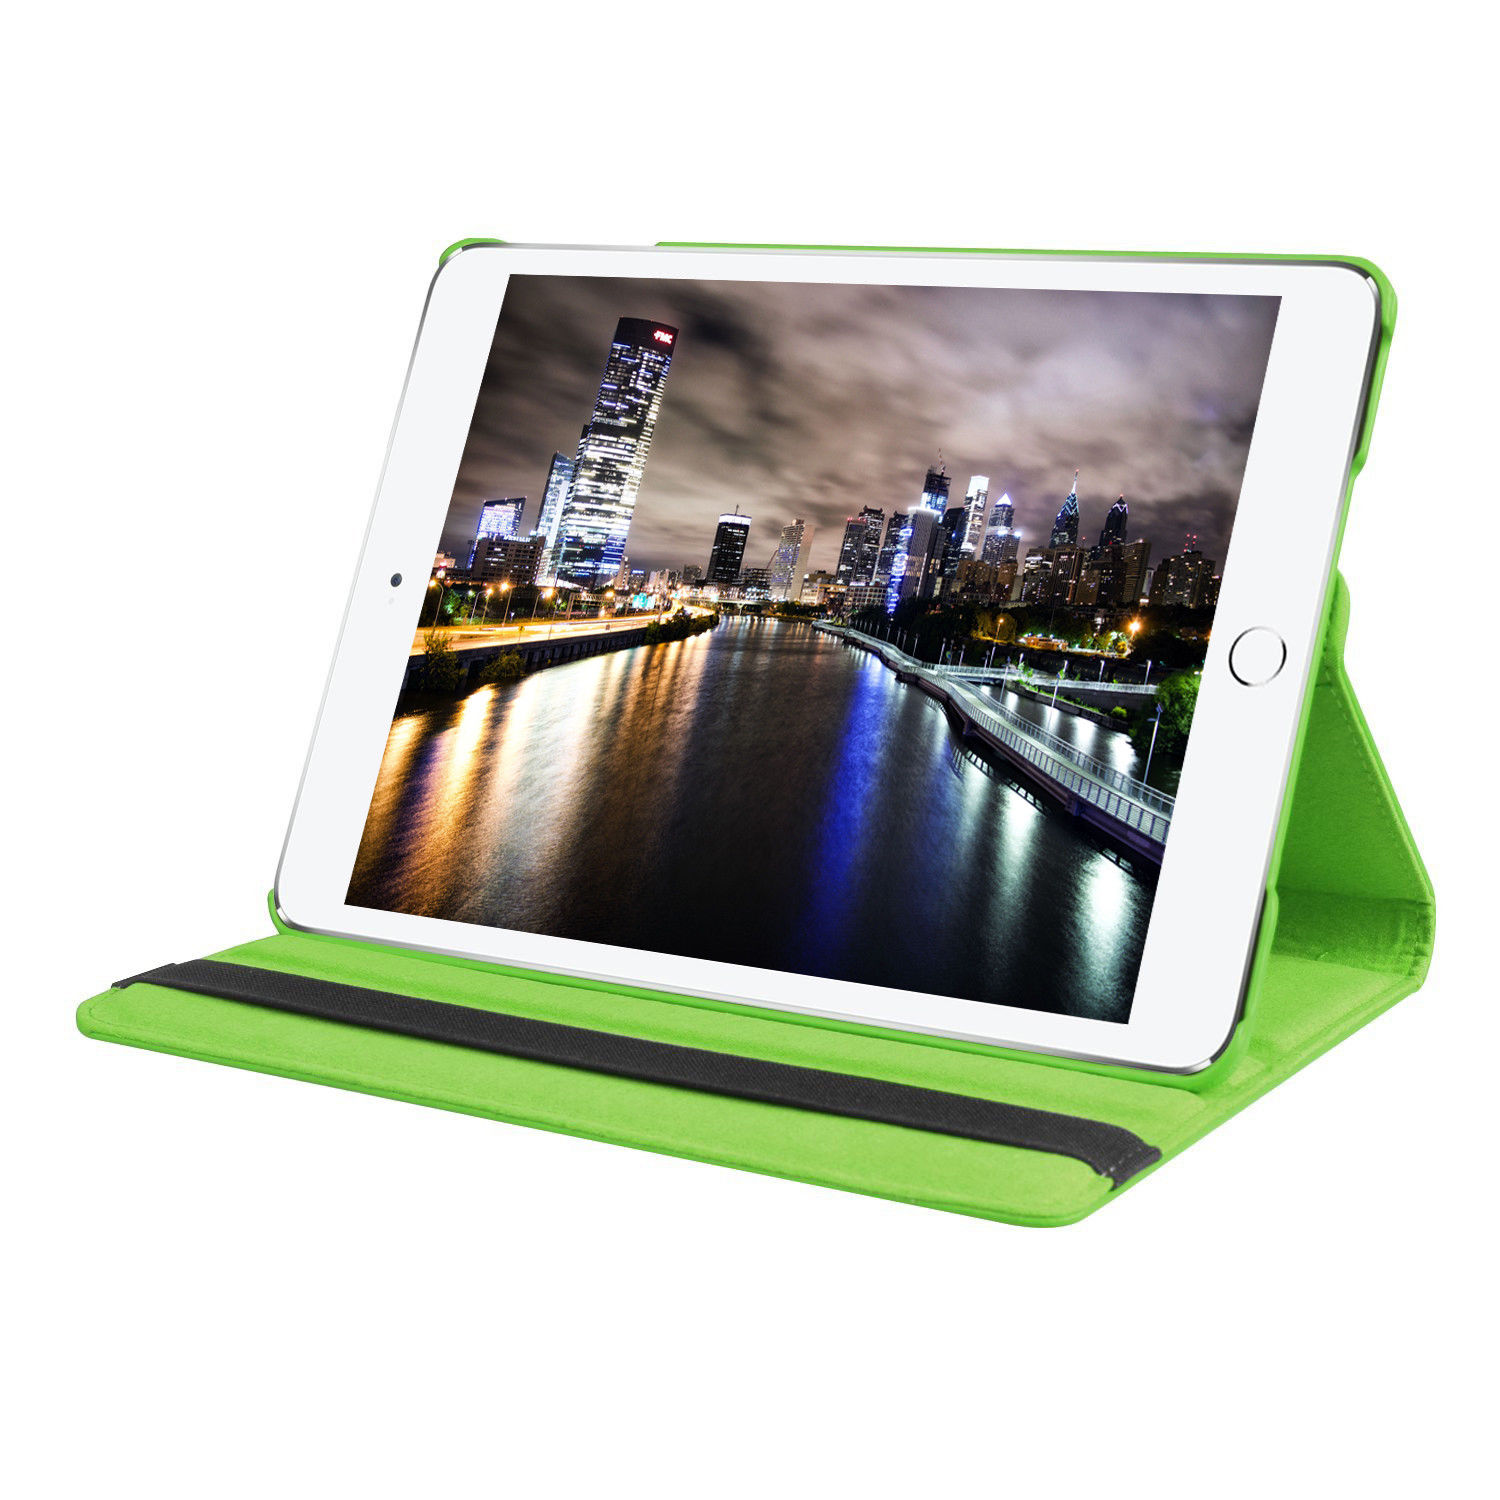 Custodia-per-Apple-iPad-Pro-2017-iPad-Air-3-10-5-Smart-Cover-Case-Custodia-Protettiva miniatura 47